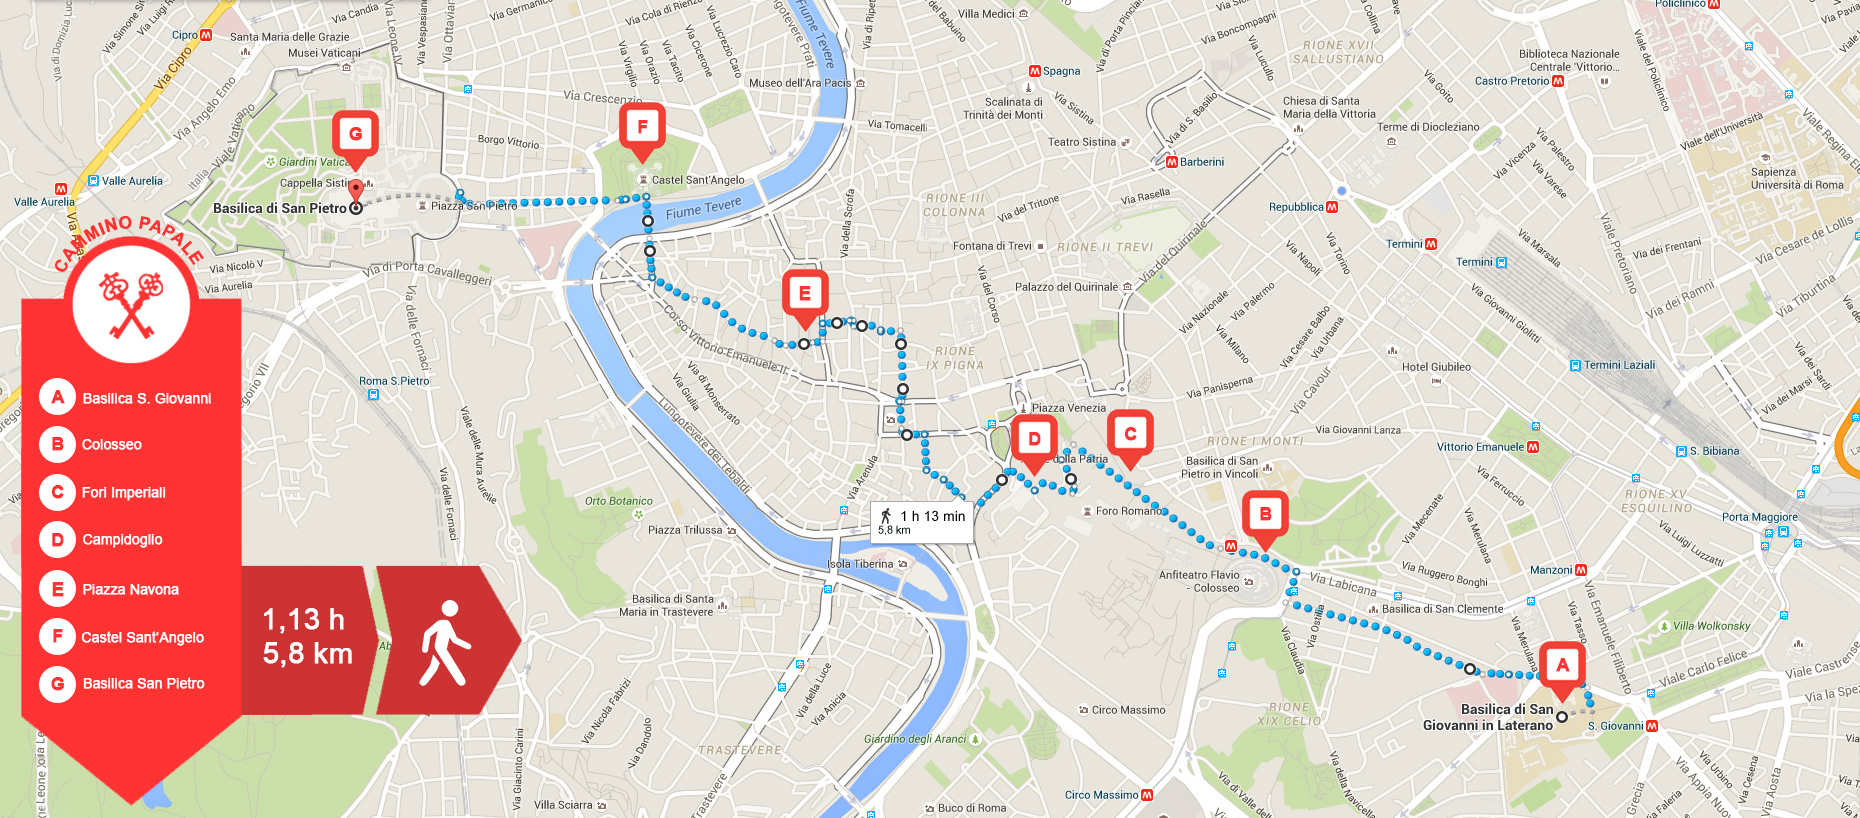 The Papal Way starts at the Basilica of Saint John and ends, after about 6 km, at St. Peter